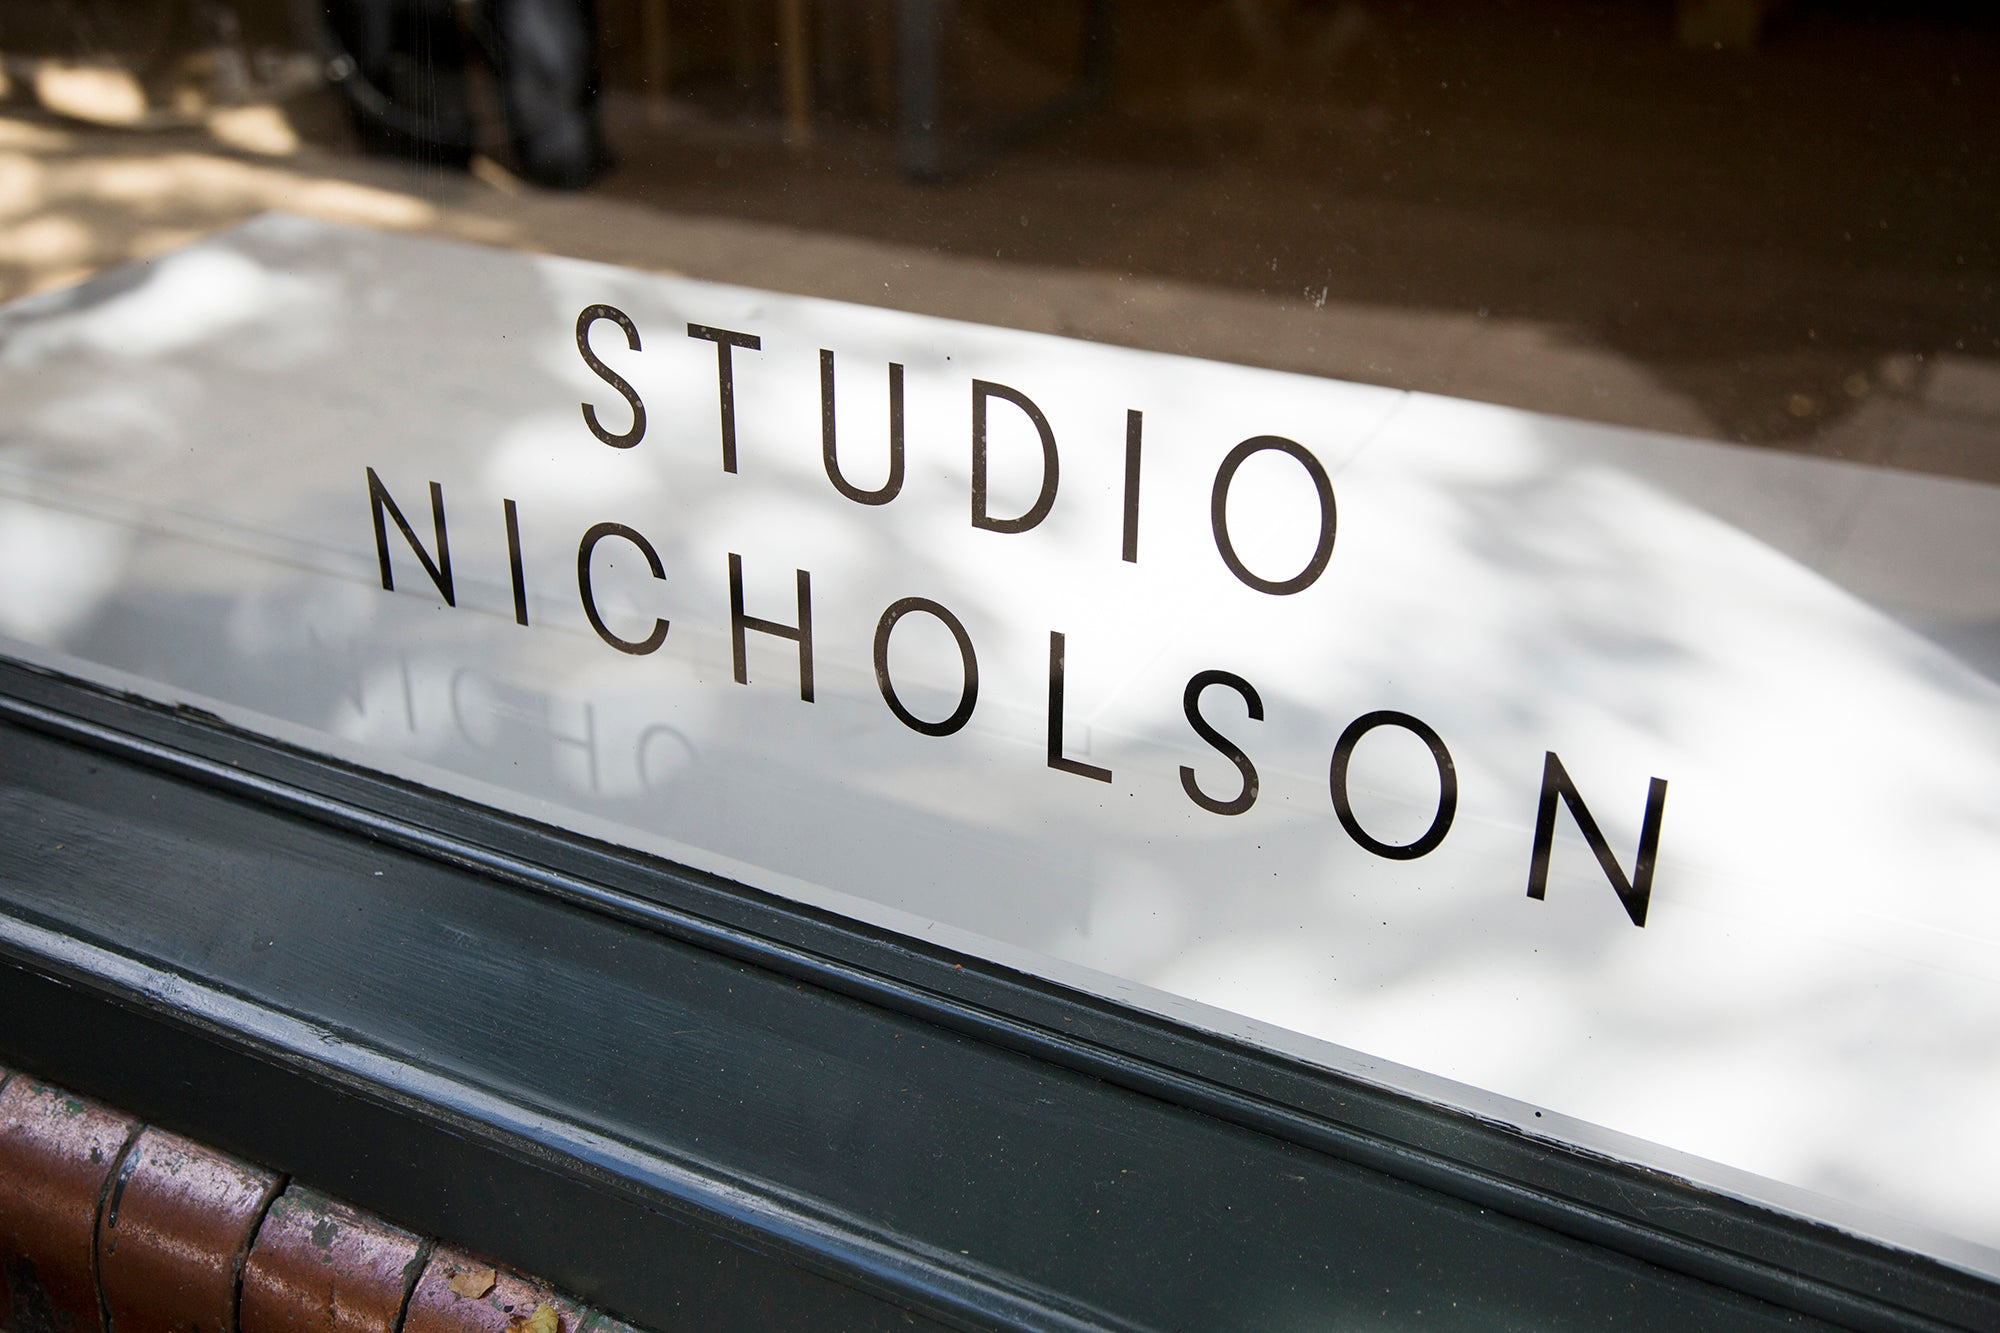 Studio Nicholson standalone store pops up in Shoreditch